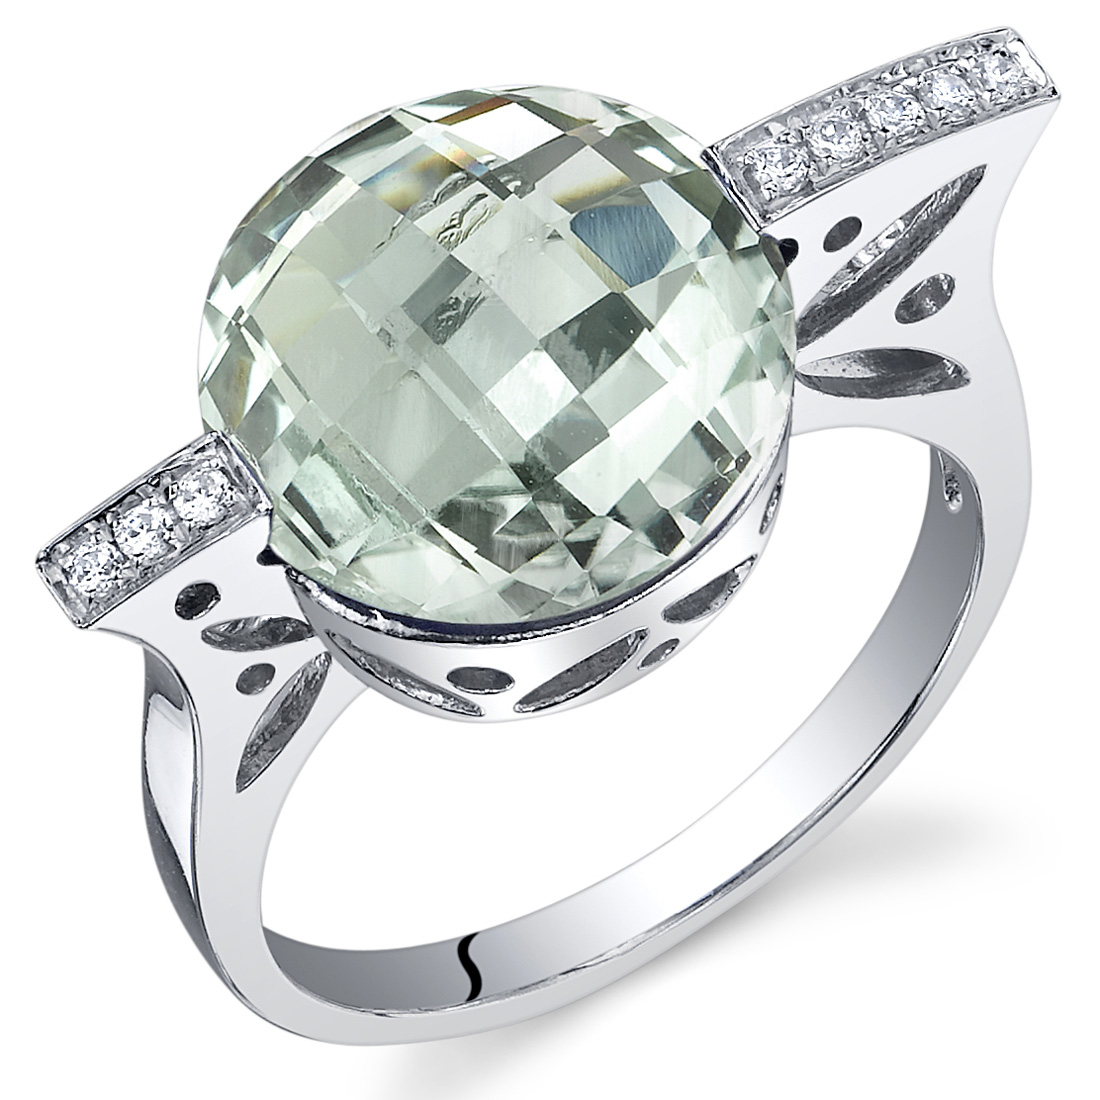 2.25 cts Green Amethyst Solitiare Ring Sterling Silver Sizes 5 to 9